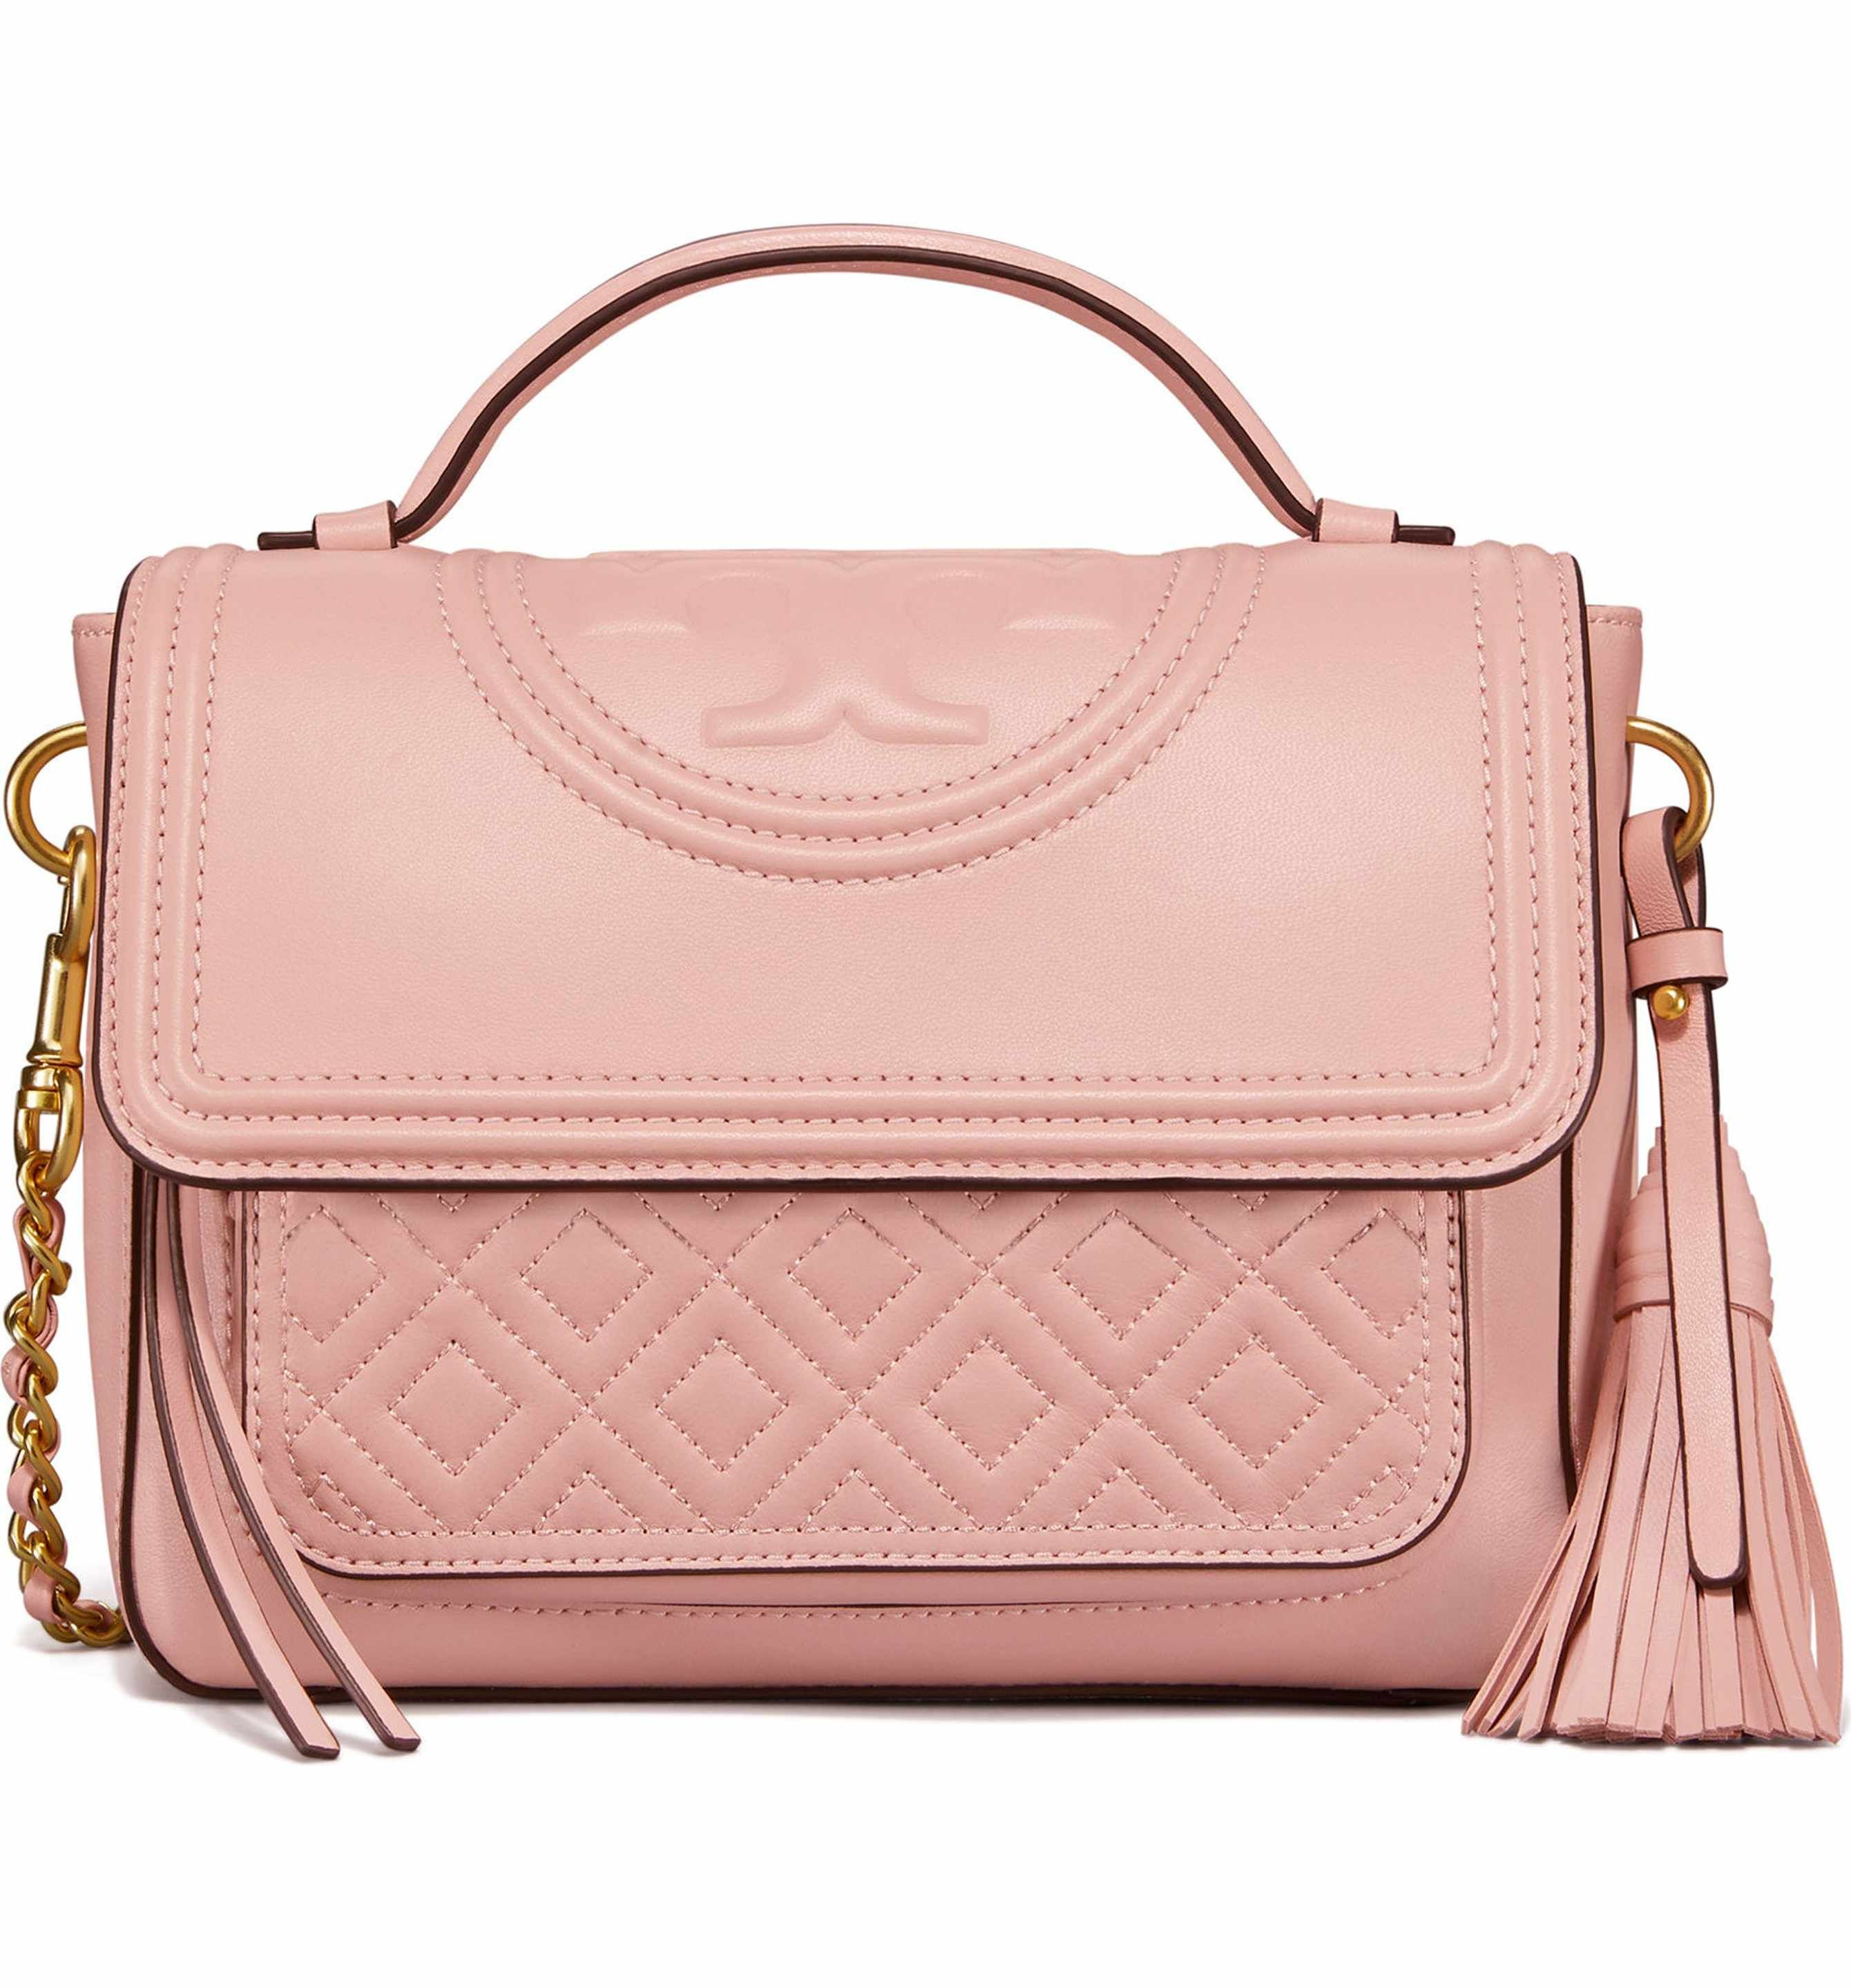 1b0ede07b5ea Main Image - Tory Burch Fleming Quilted Leather Top Handle Satchel ...